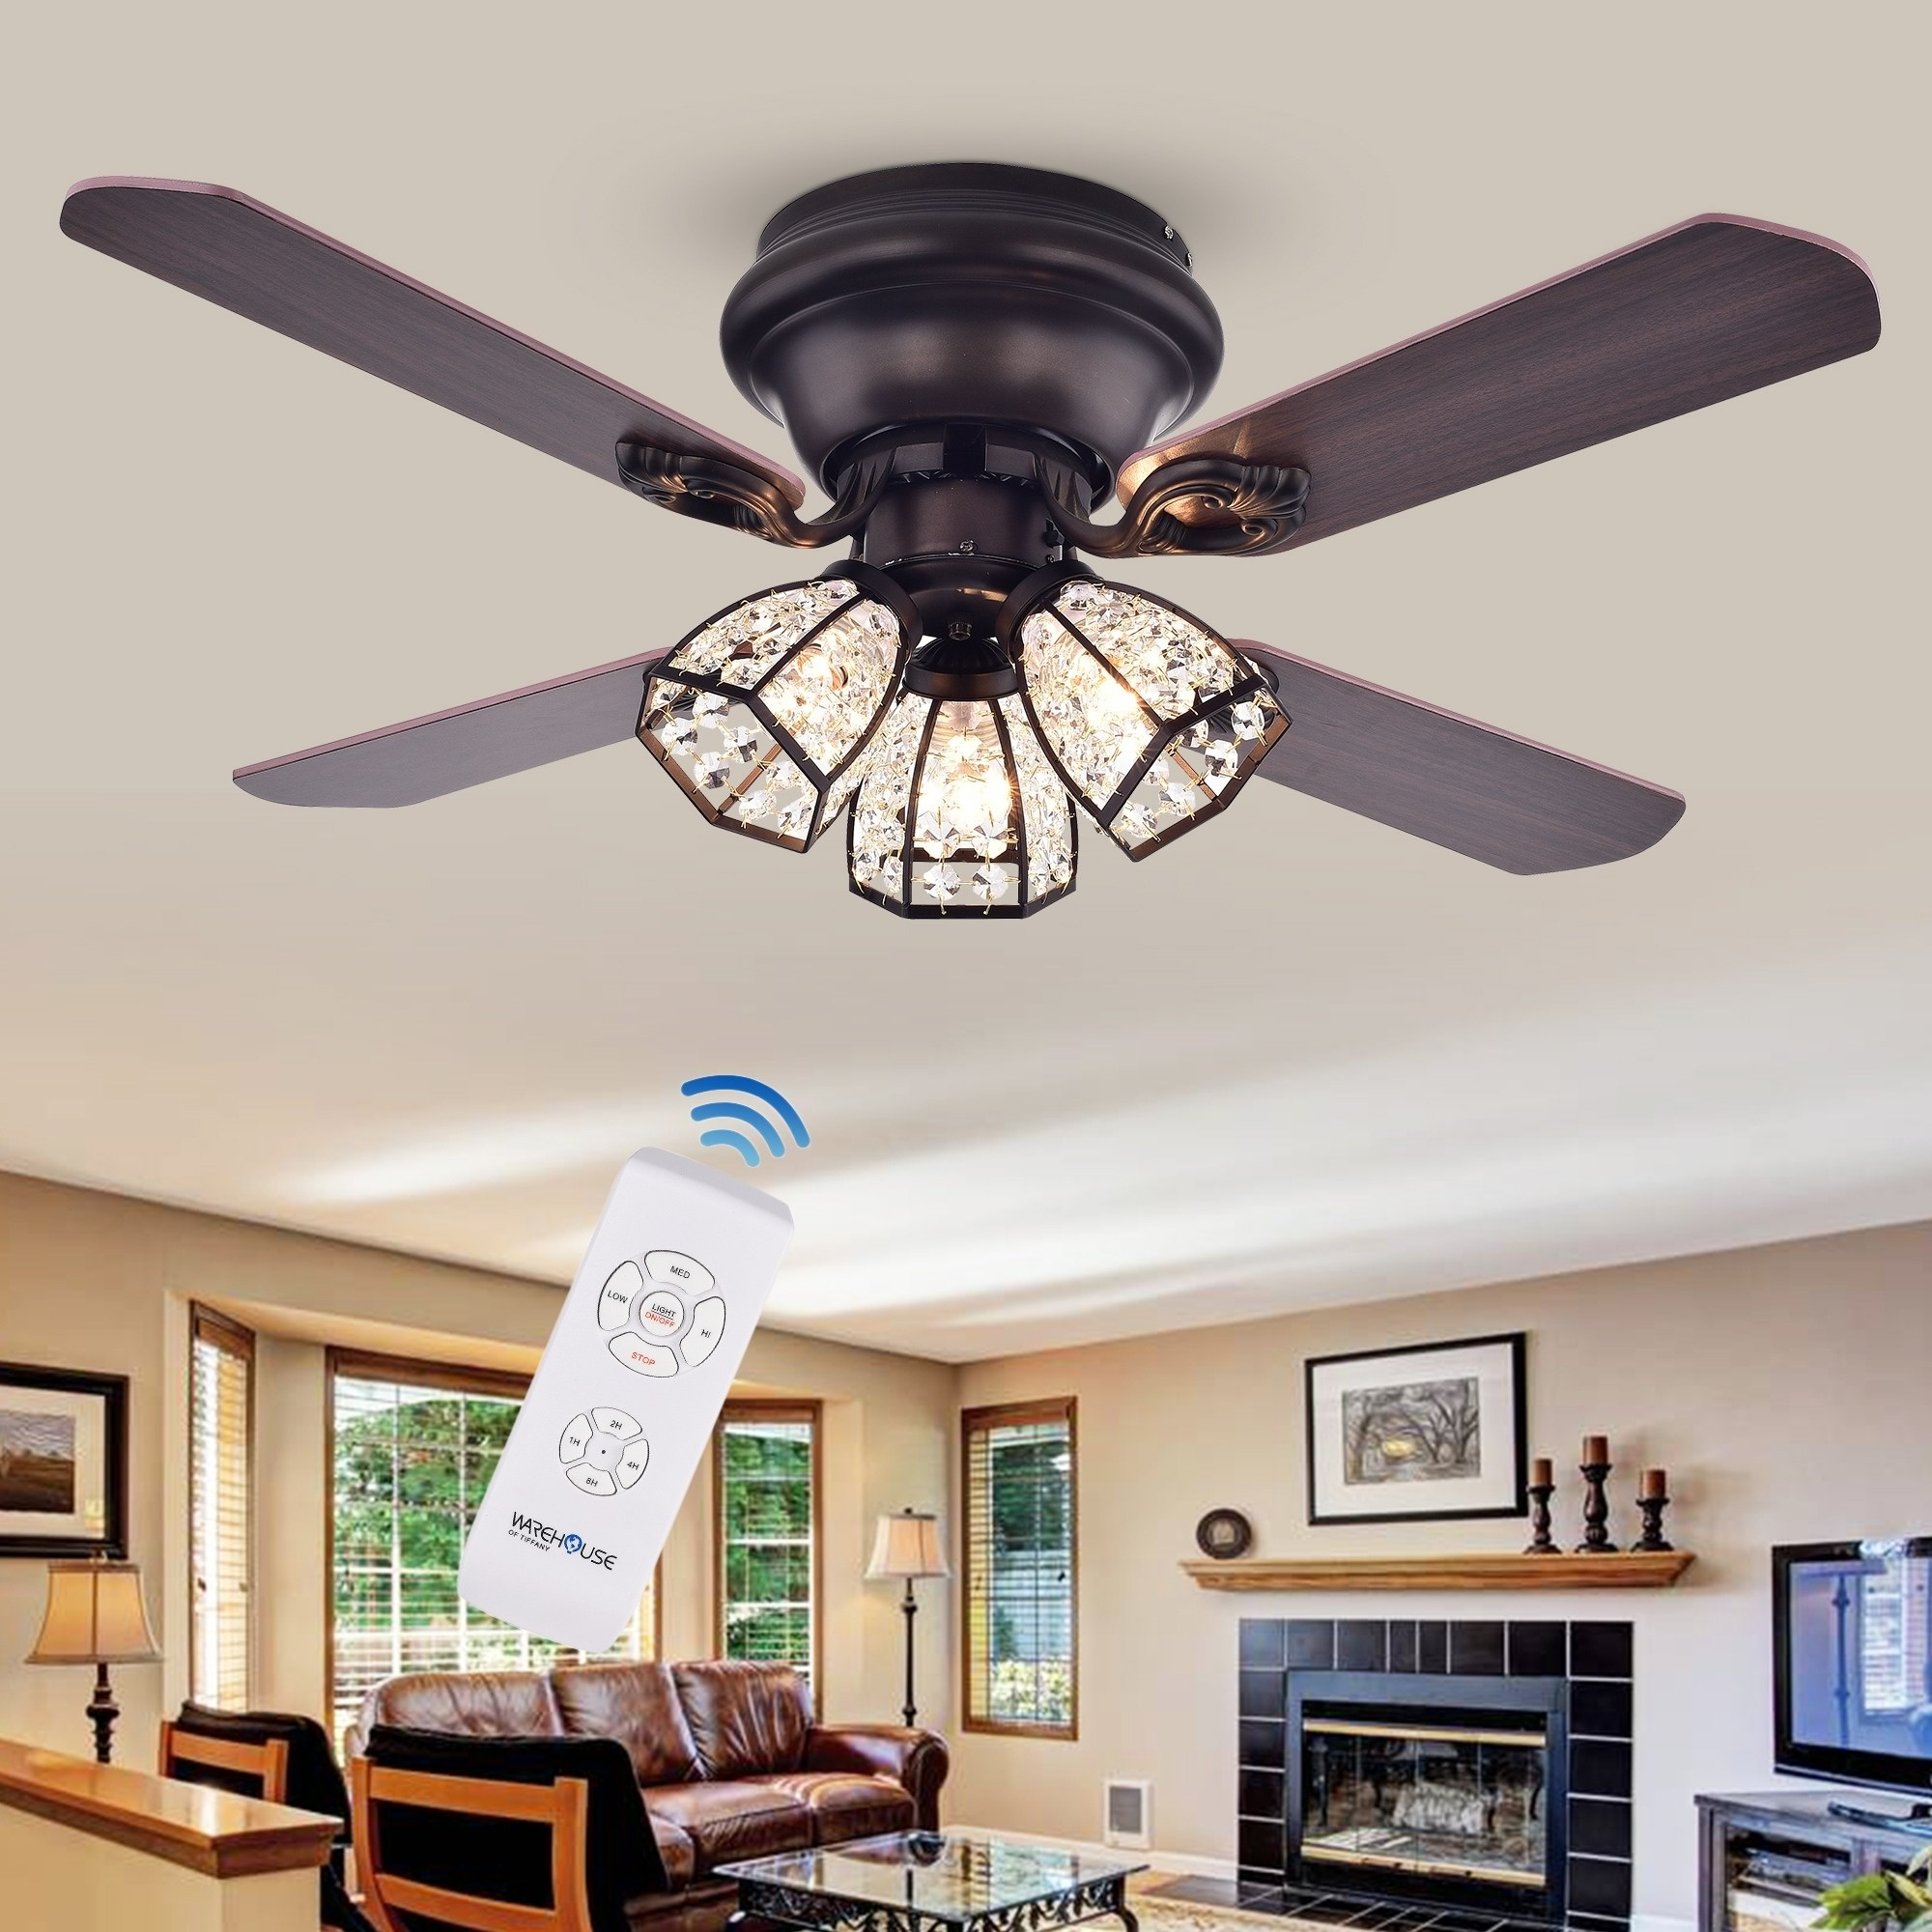 Tarudor 3-Light Crystal 4-blade Dark Wood with Antique Bronze Housing 42-inch Ceiling Fan with Remote